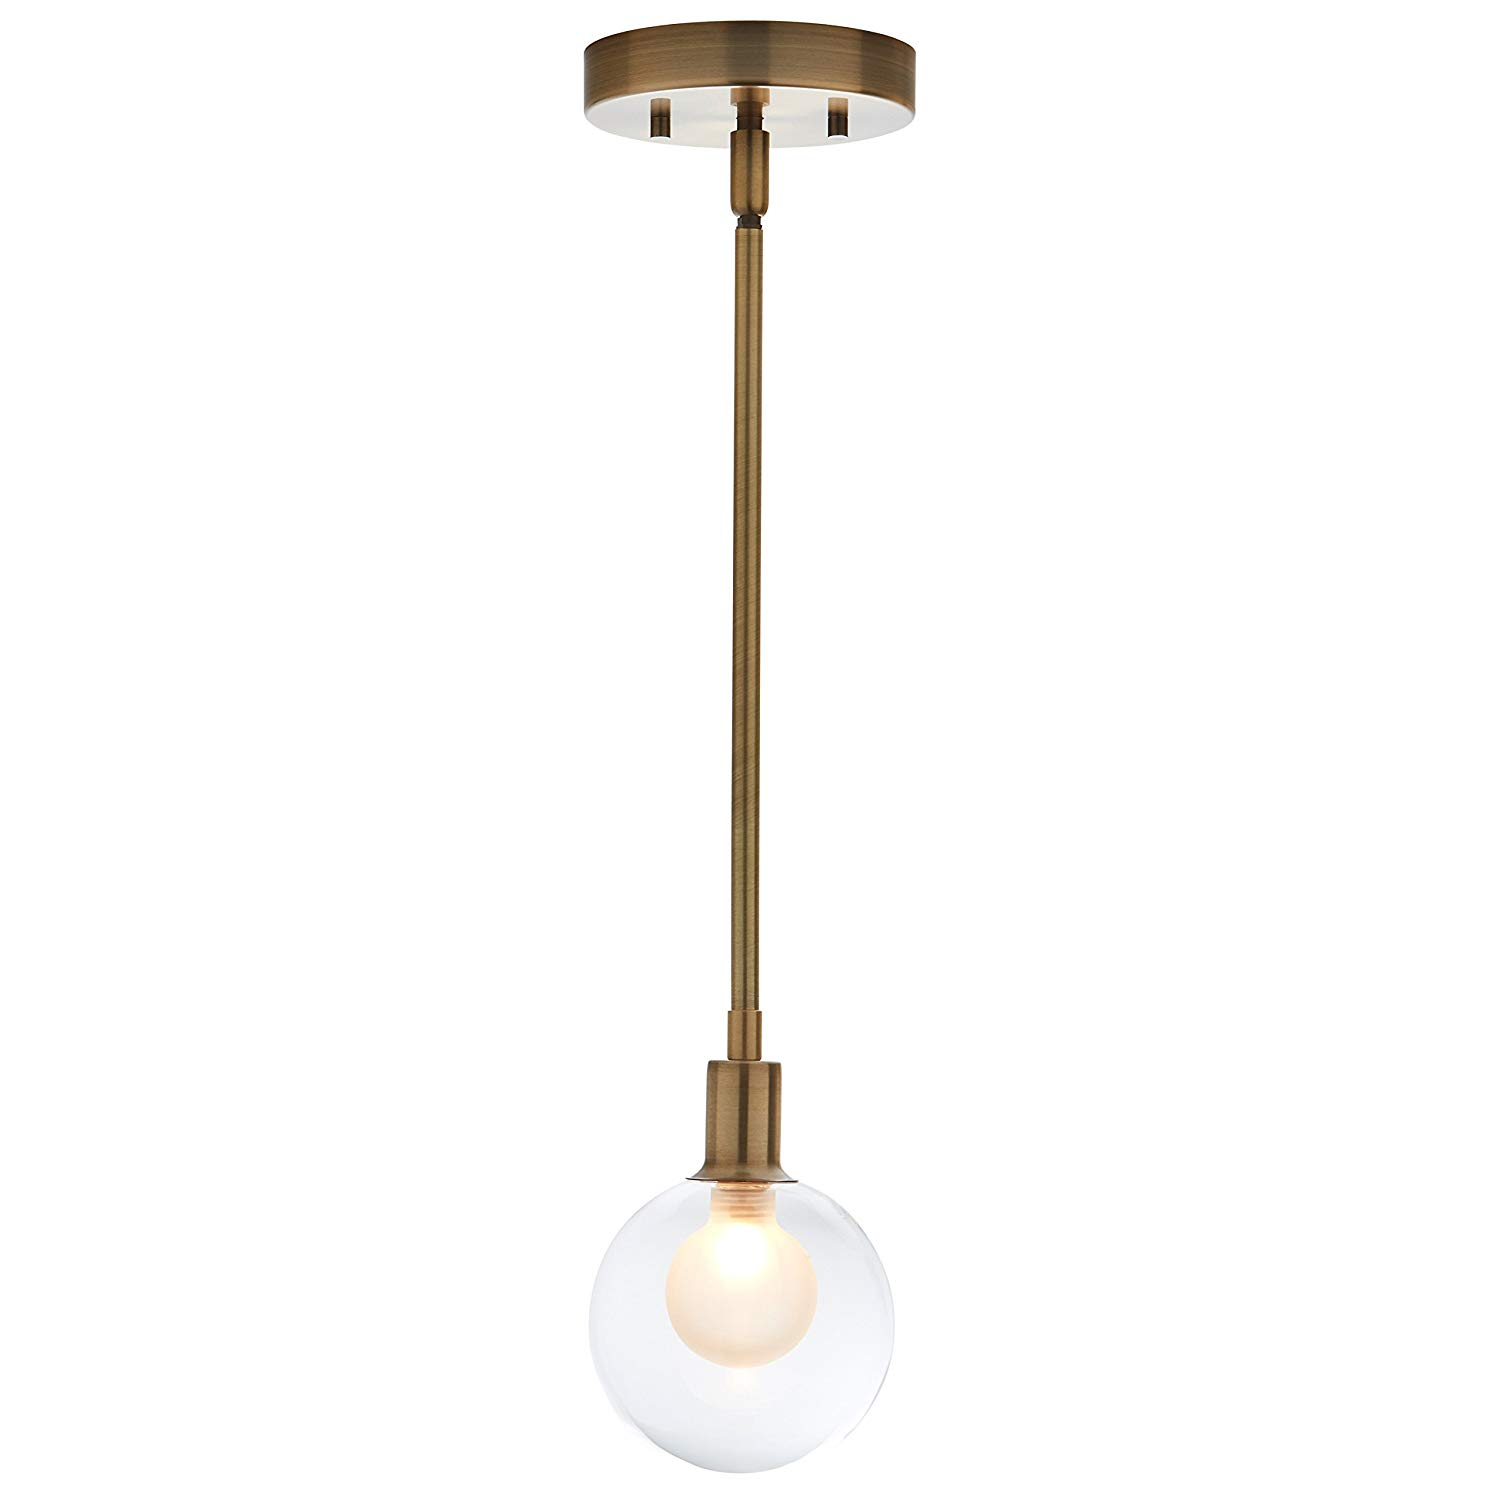 Gold Modern Light Fixture.jpg